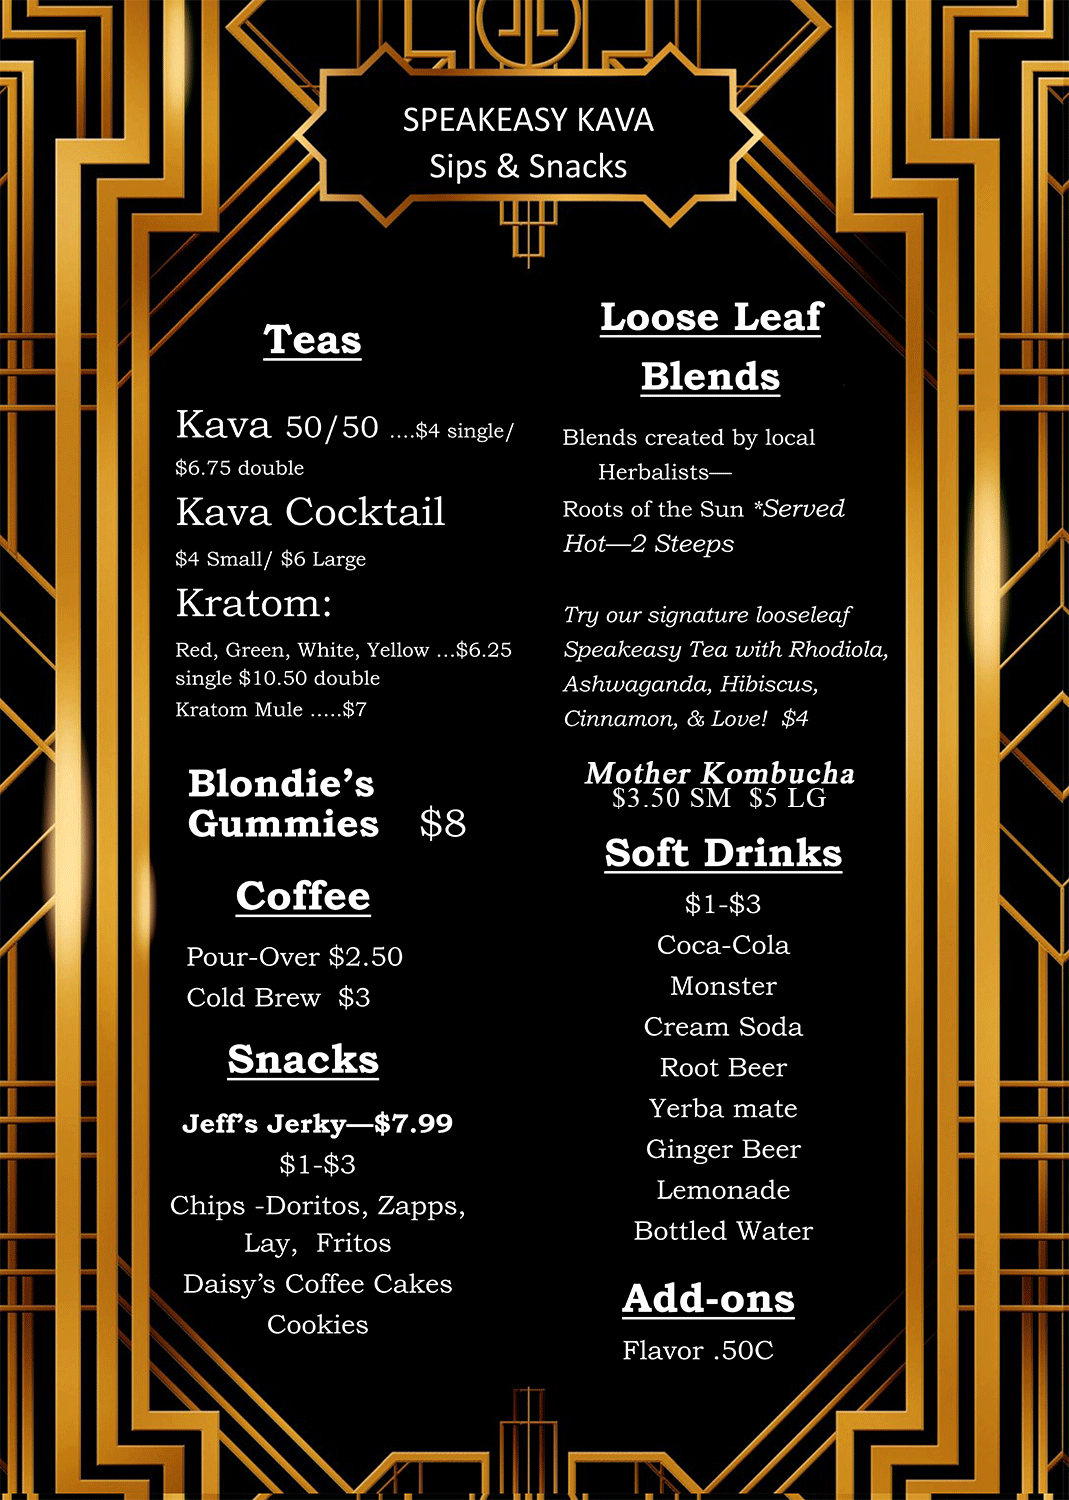 speakeasy kava tea bar menu